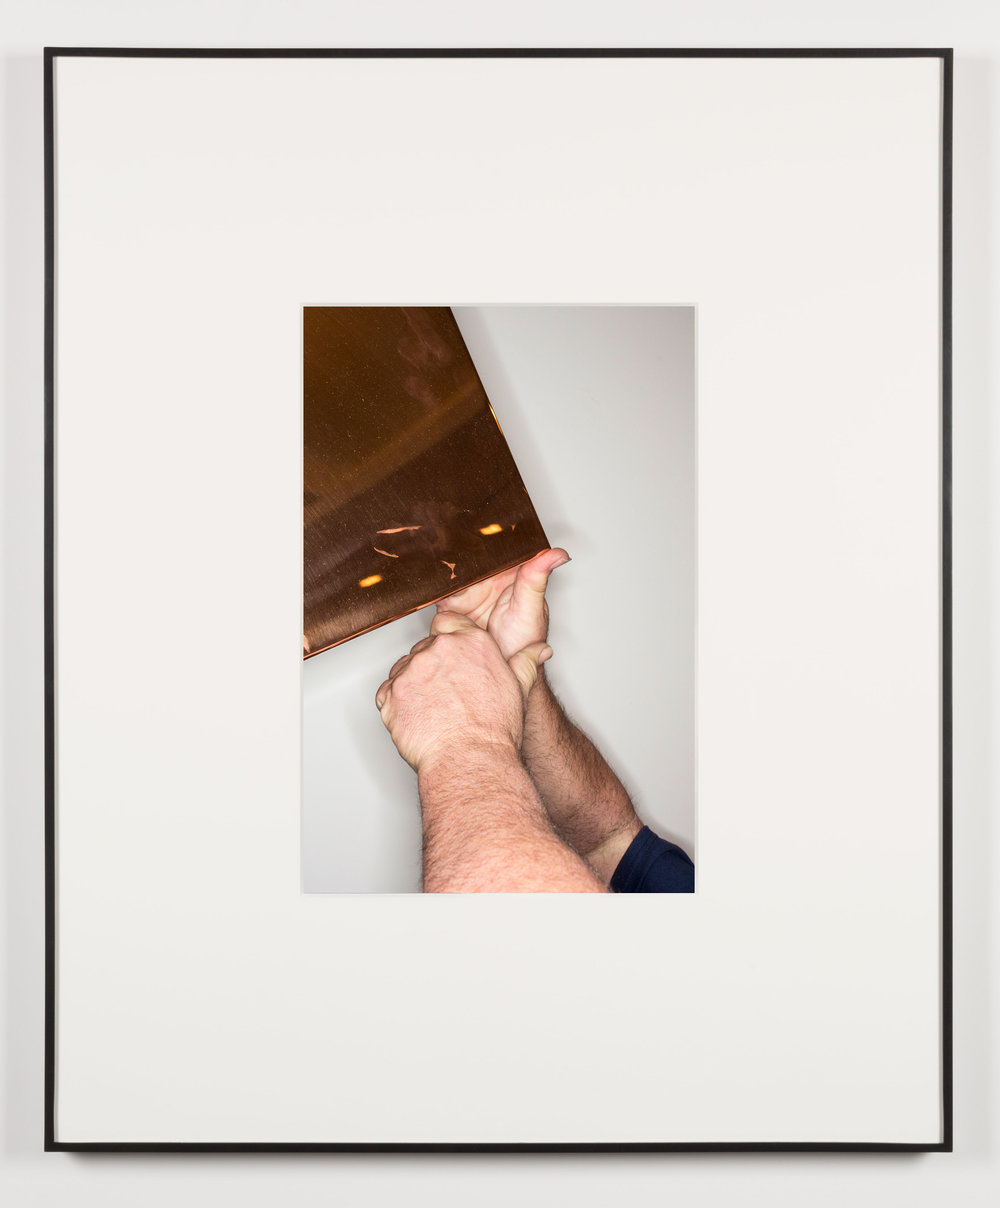 Das Gesicht des Terrors (Los Angeles, California, February 20, 2014)   2014  Chromogenic print  20 x 13 1/2 inches   Art Handling, 2011–    Selected Bodies of Work, 2014